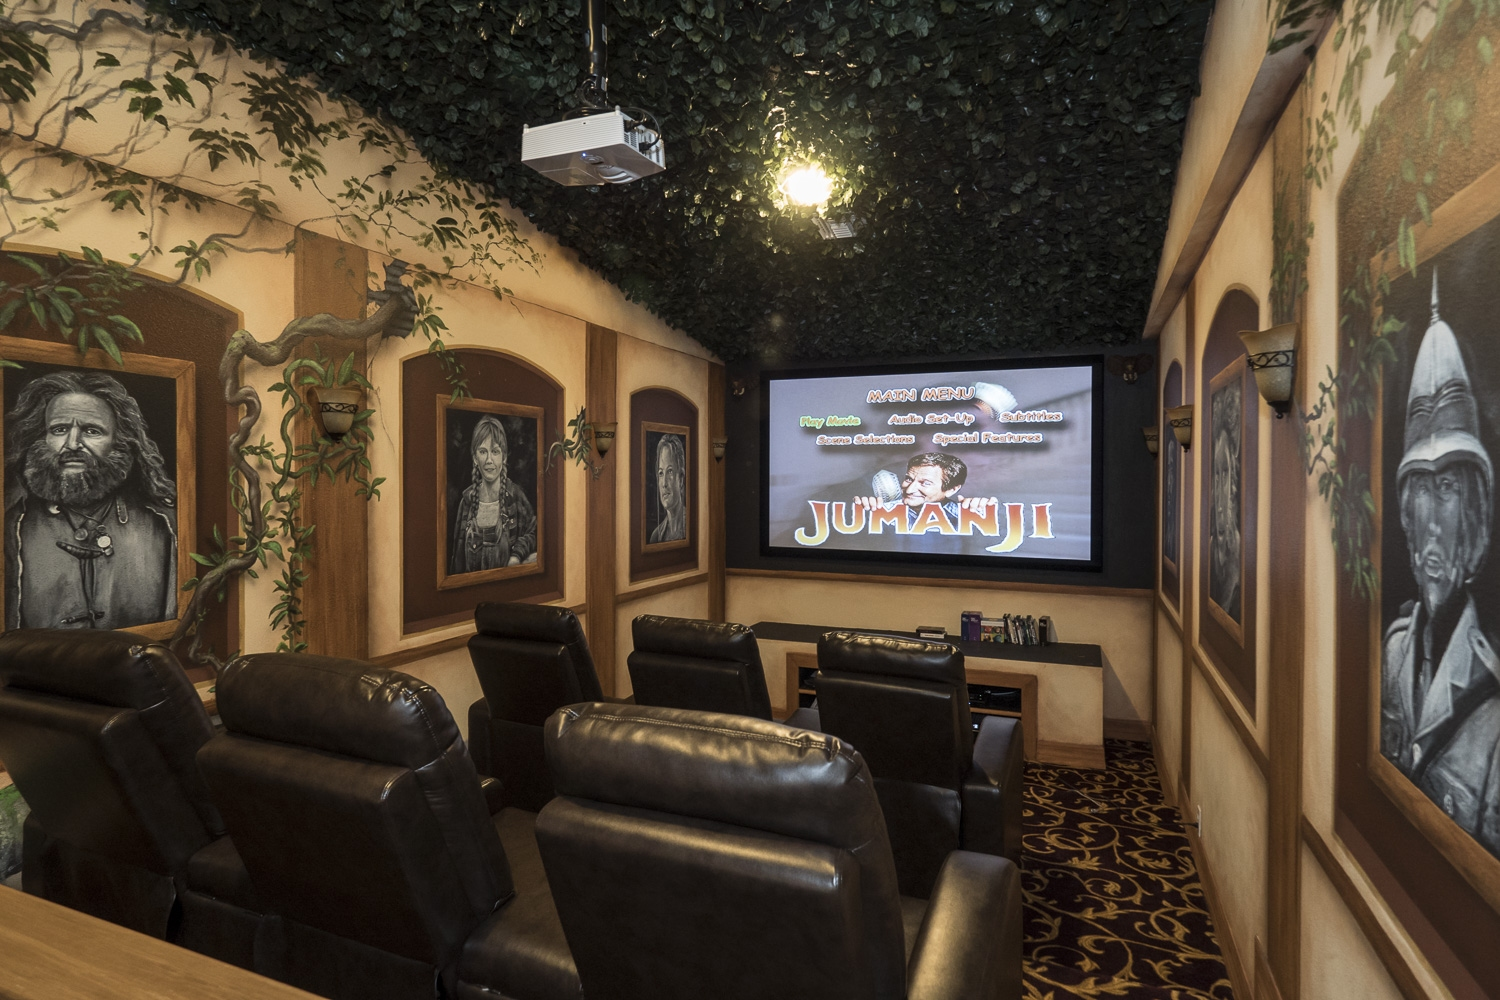 The Jumanji Home Theater At The Great Escape Lakeside